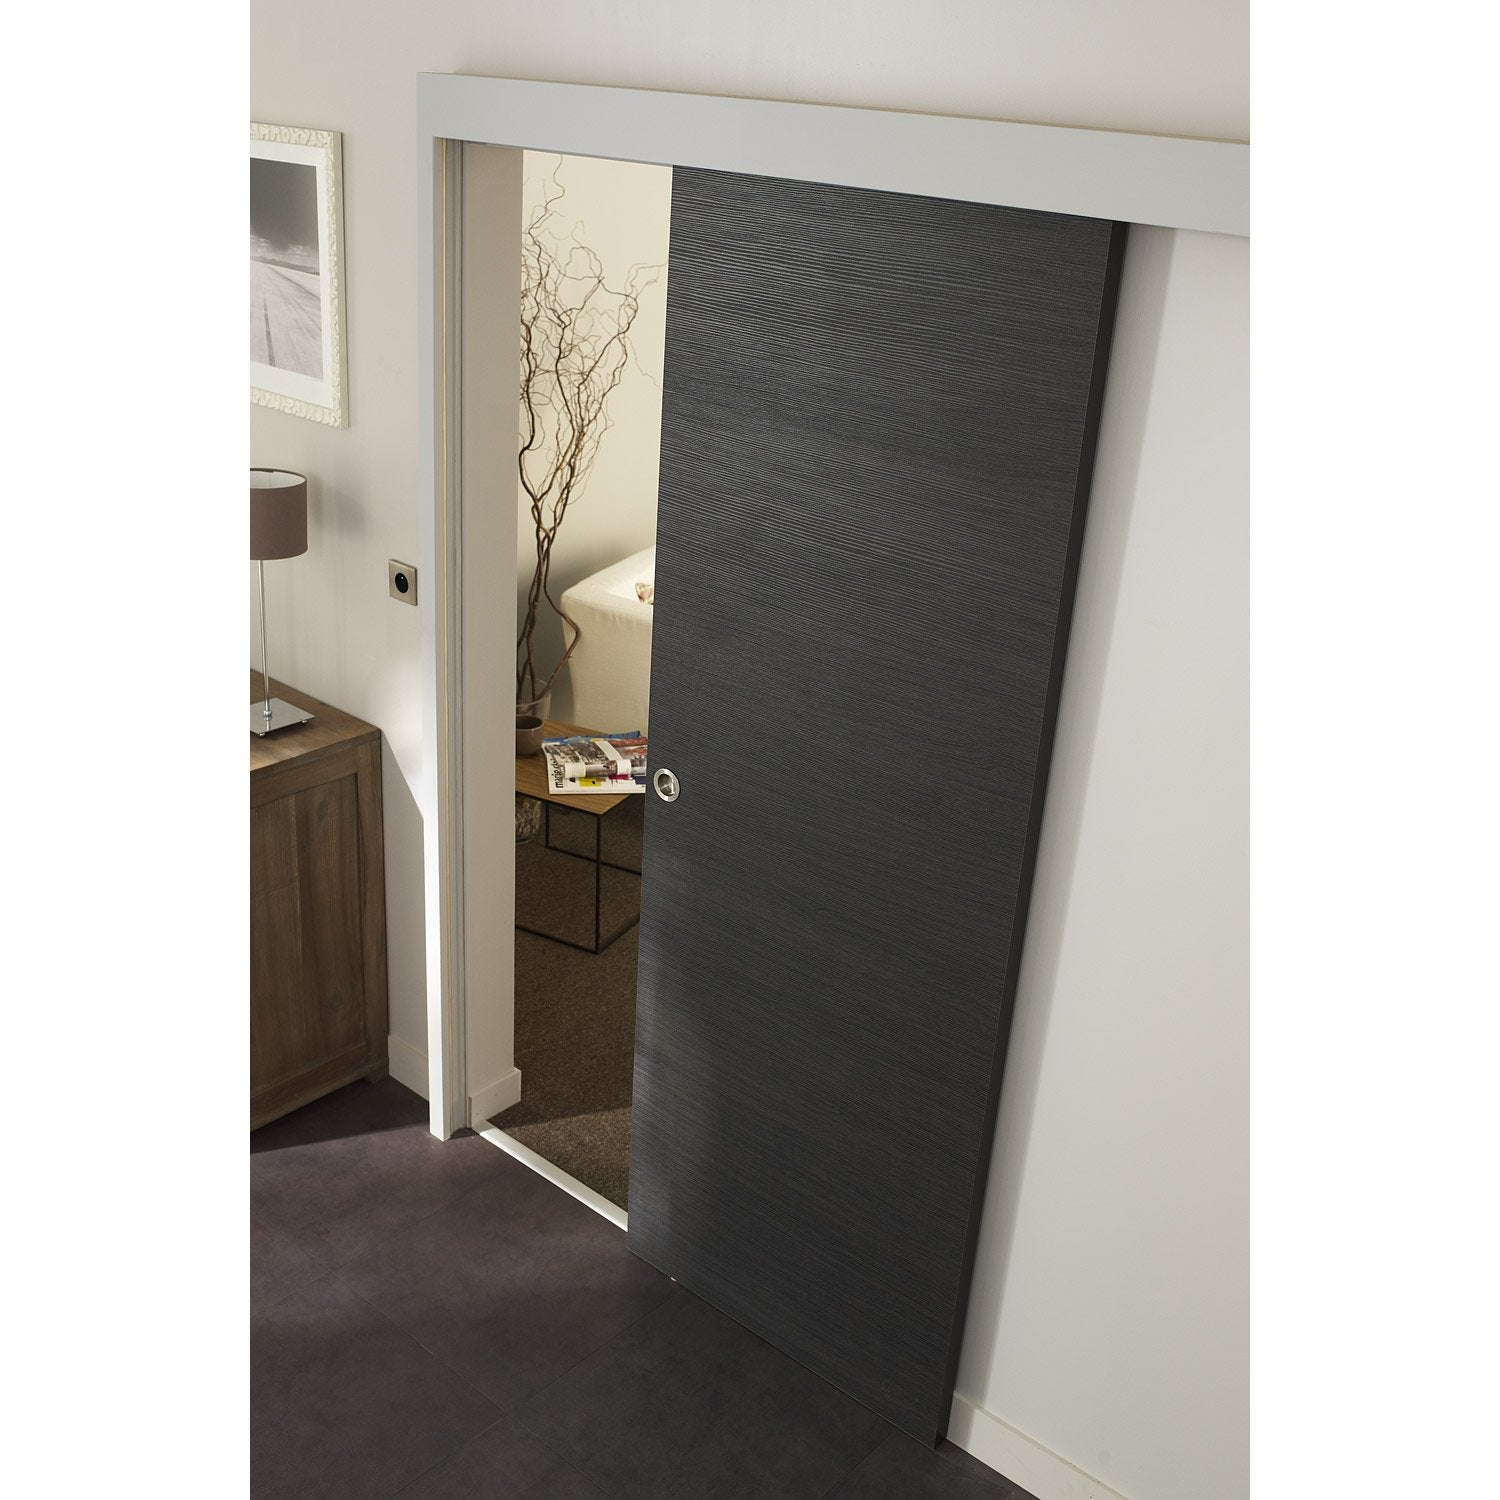 Ensemble porte coulissante londres mdf rev tu avec le rail jazz 2 en aluminiu - Porte renovation leroy merlin ...